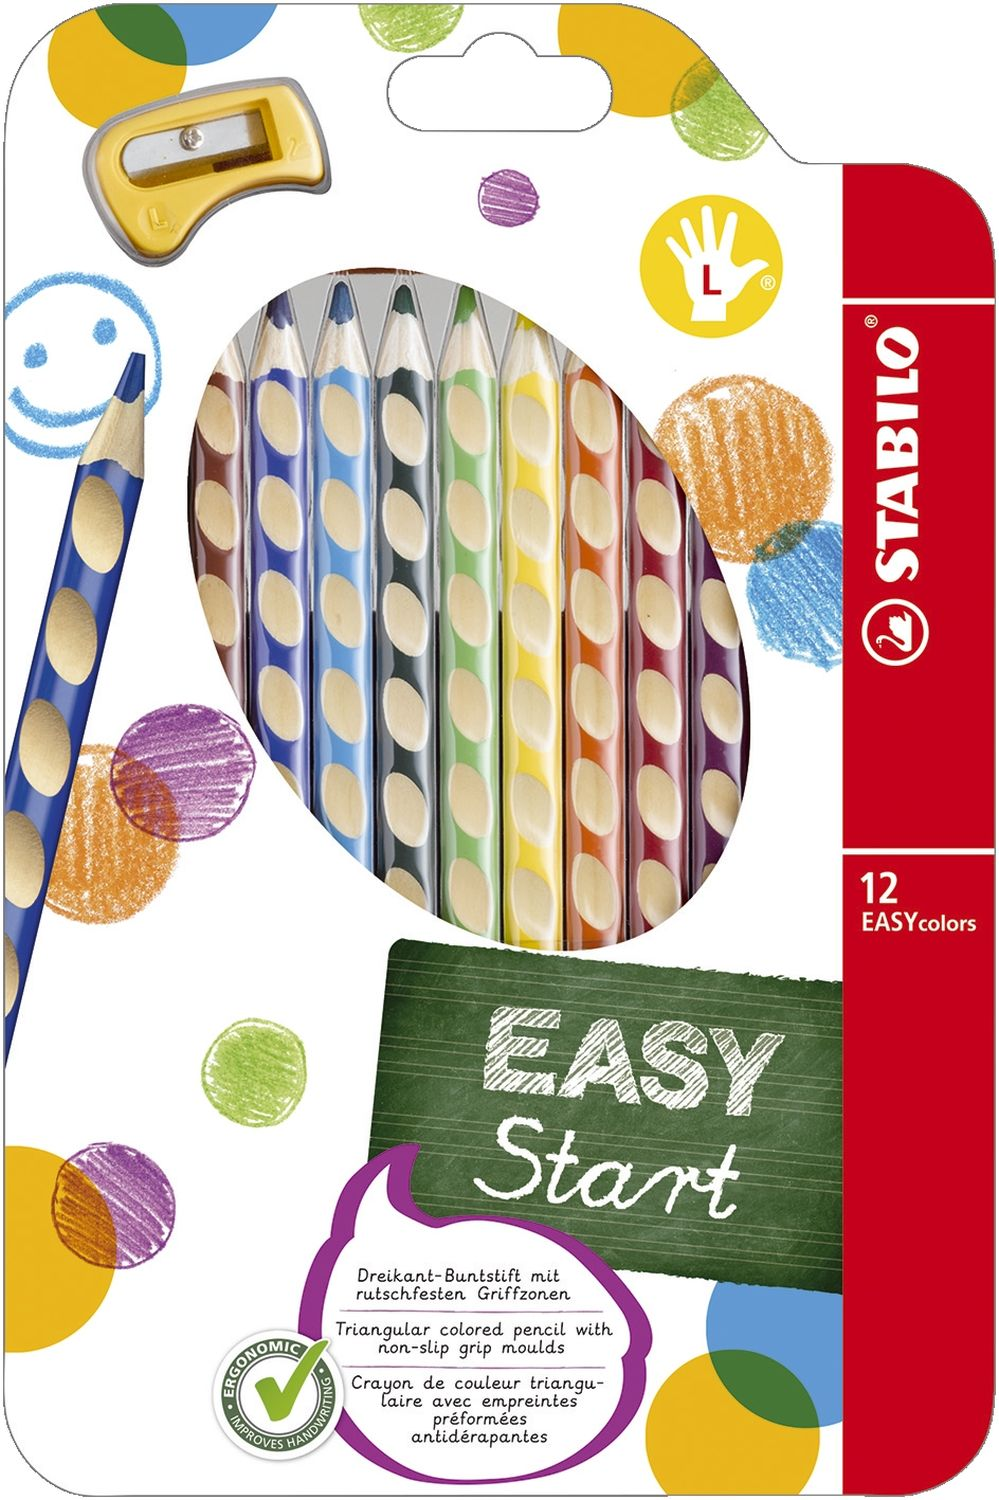 Stabilo EASYcolors Buntstifte Linkshänder, 12er Pack